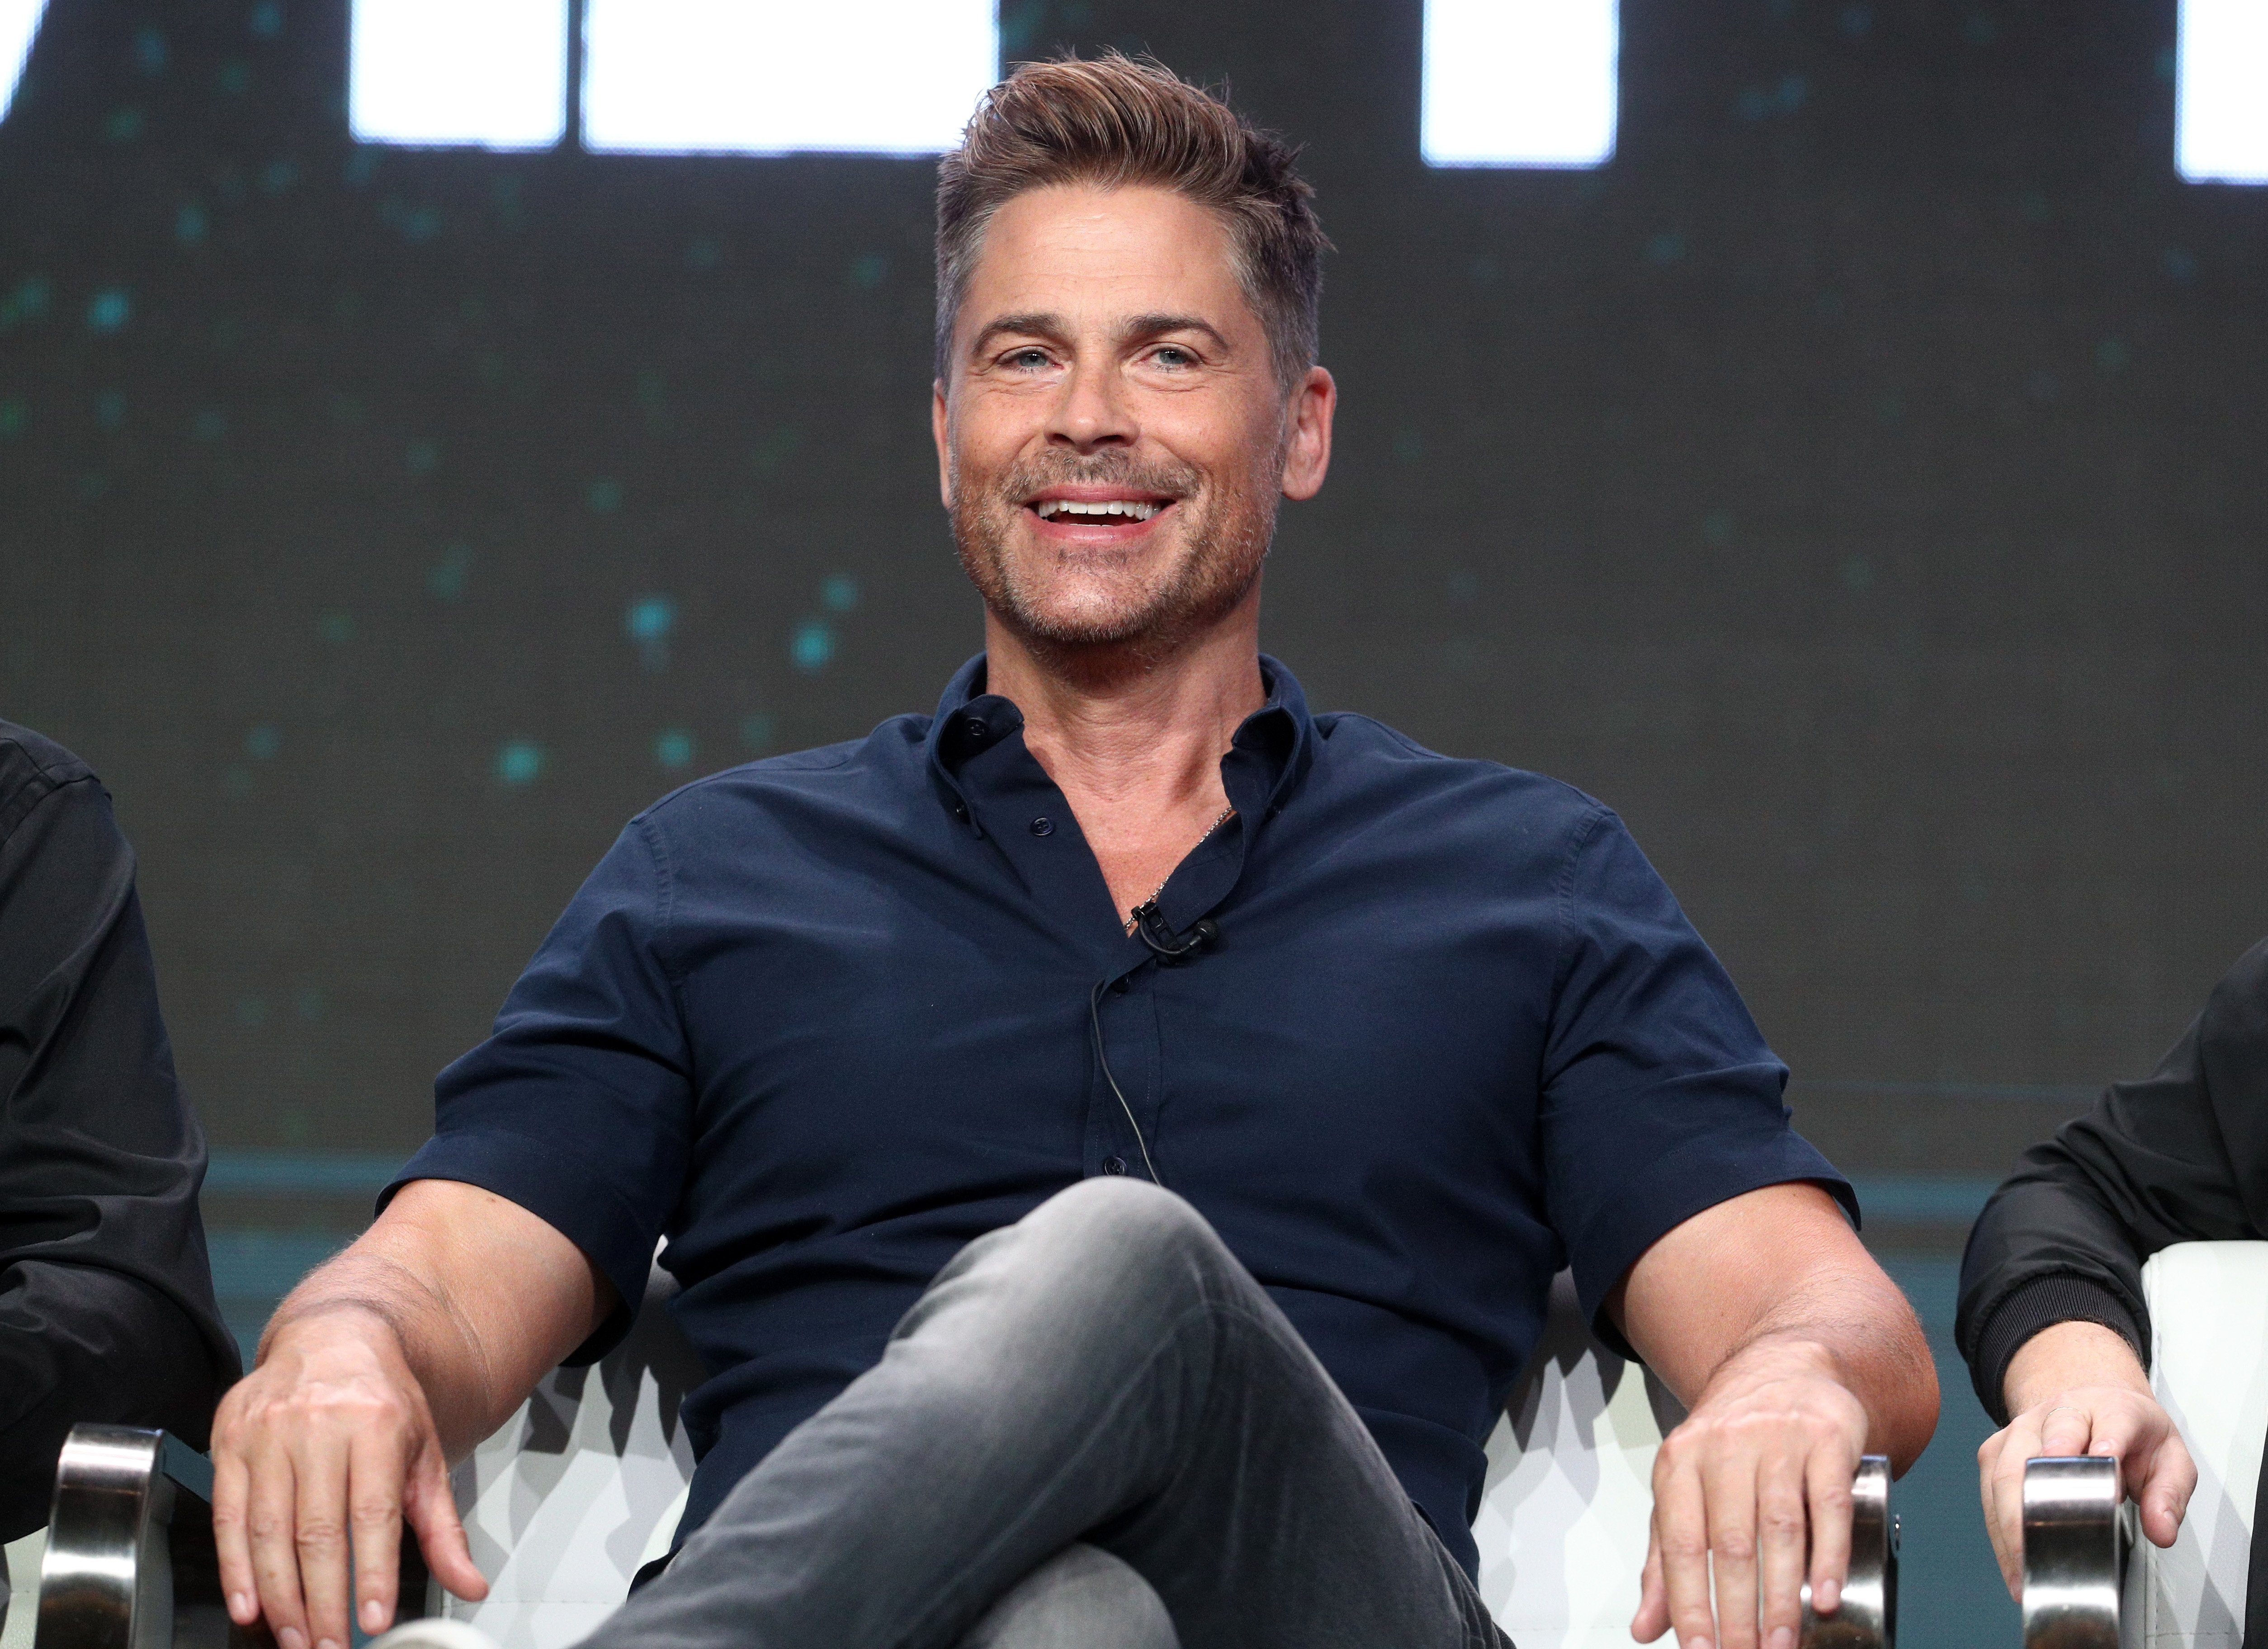 """Rob Lowe pictured onstage during the A+E portion of the screening of """"The Lowe Files."""" 2017, California. 